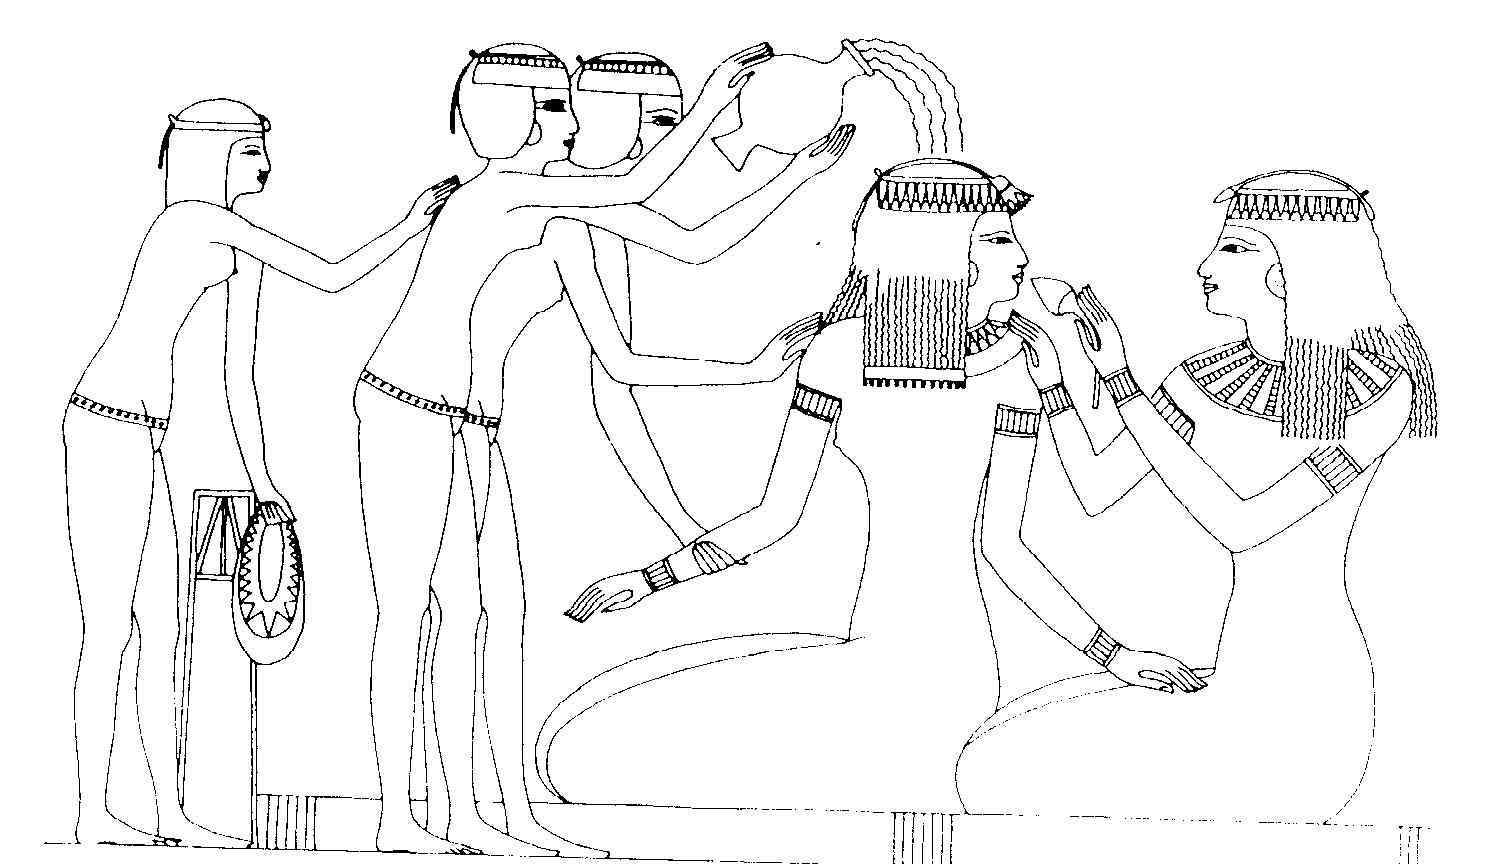 ancient egypt research paper Gods of ancient egypt- gods of ancient egypt research paper discusses that religion was the center of their life, and the gods influenced it.